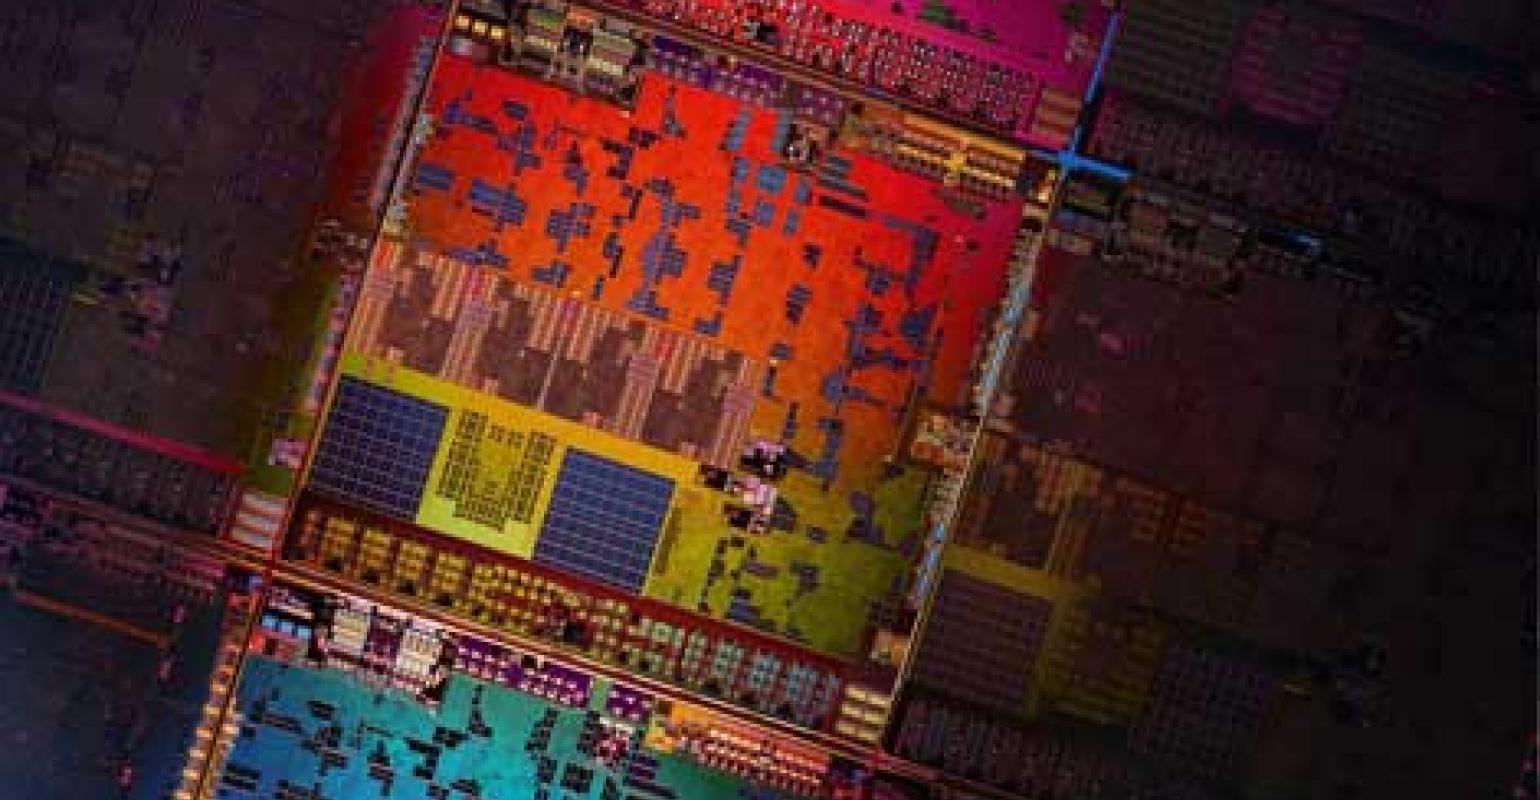 AMD Reveals Plans for Low-Power ARM Solution in 2014 | Data